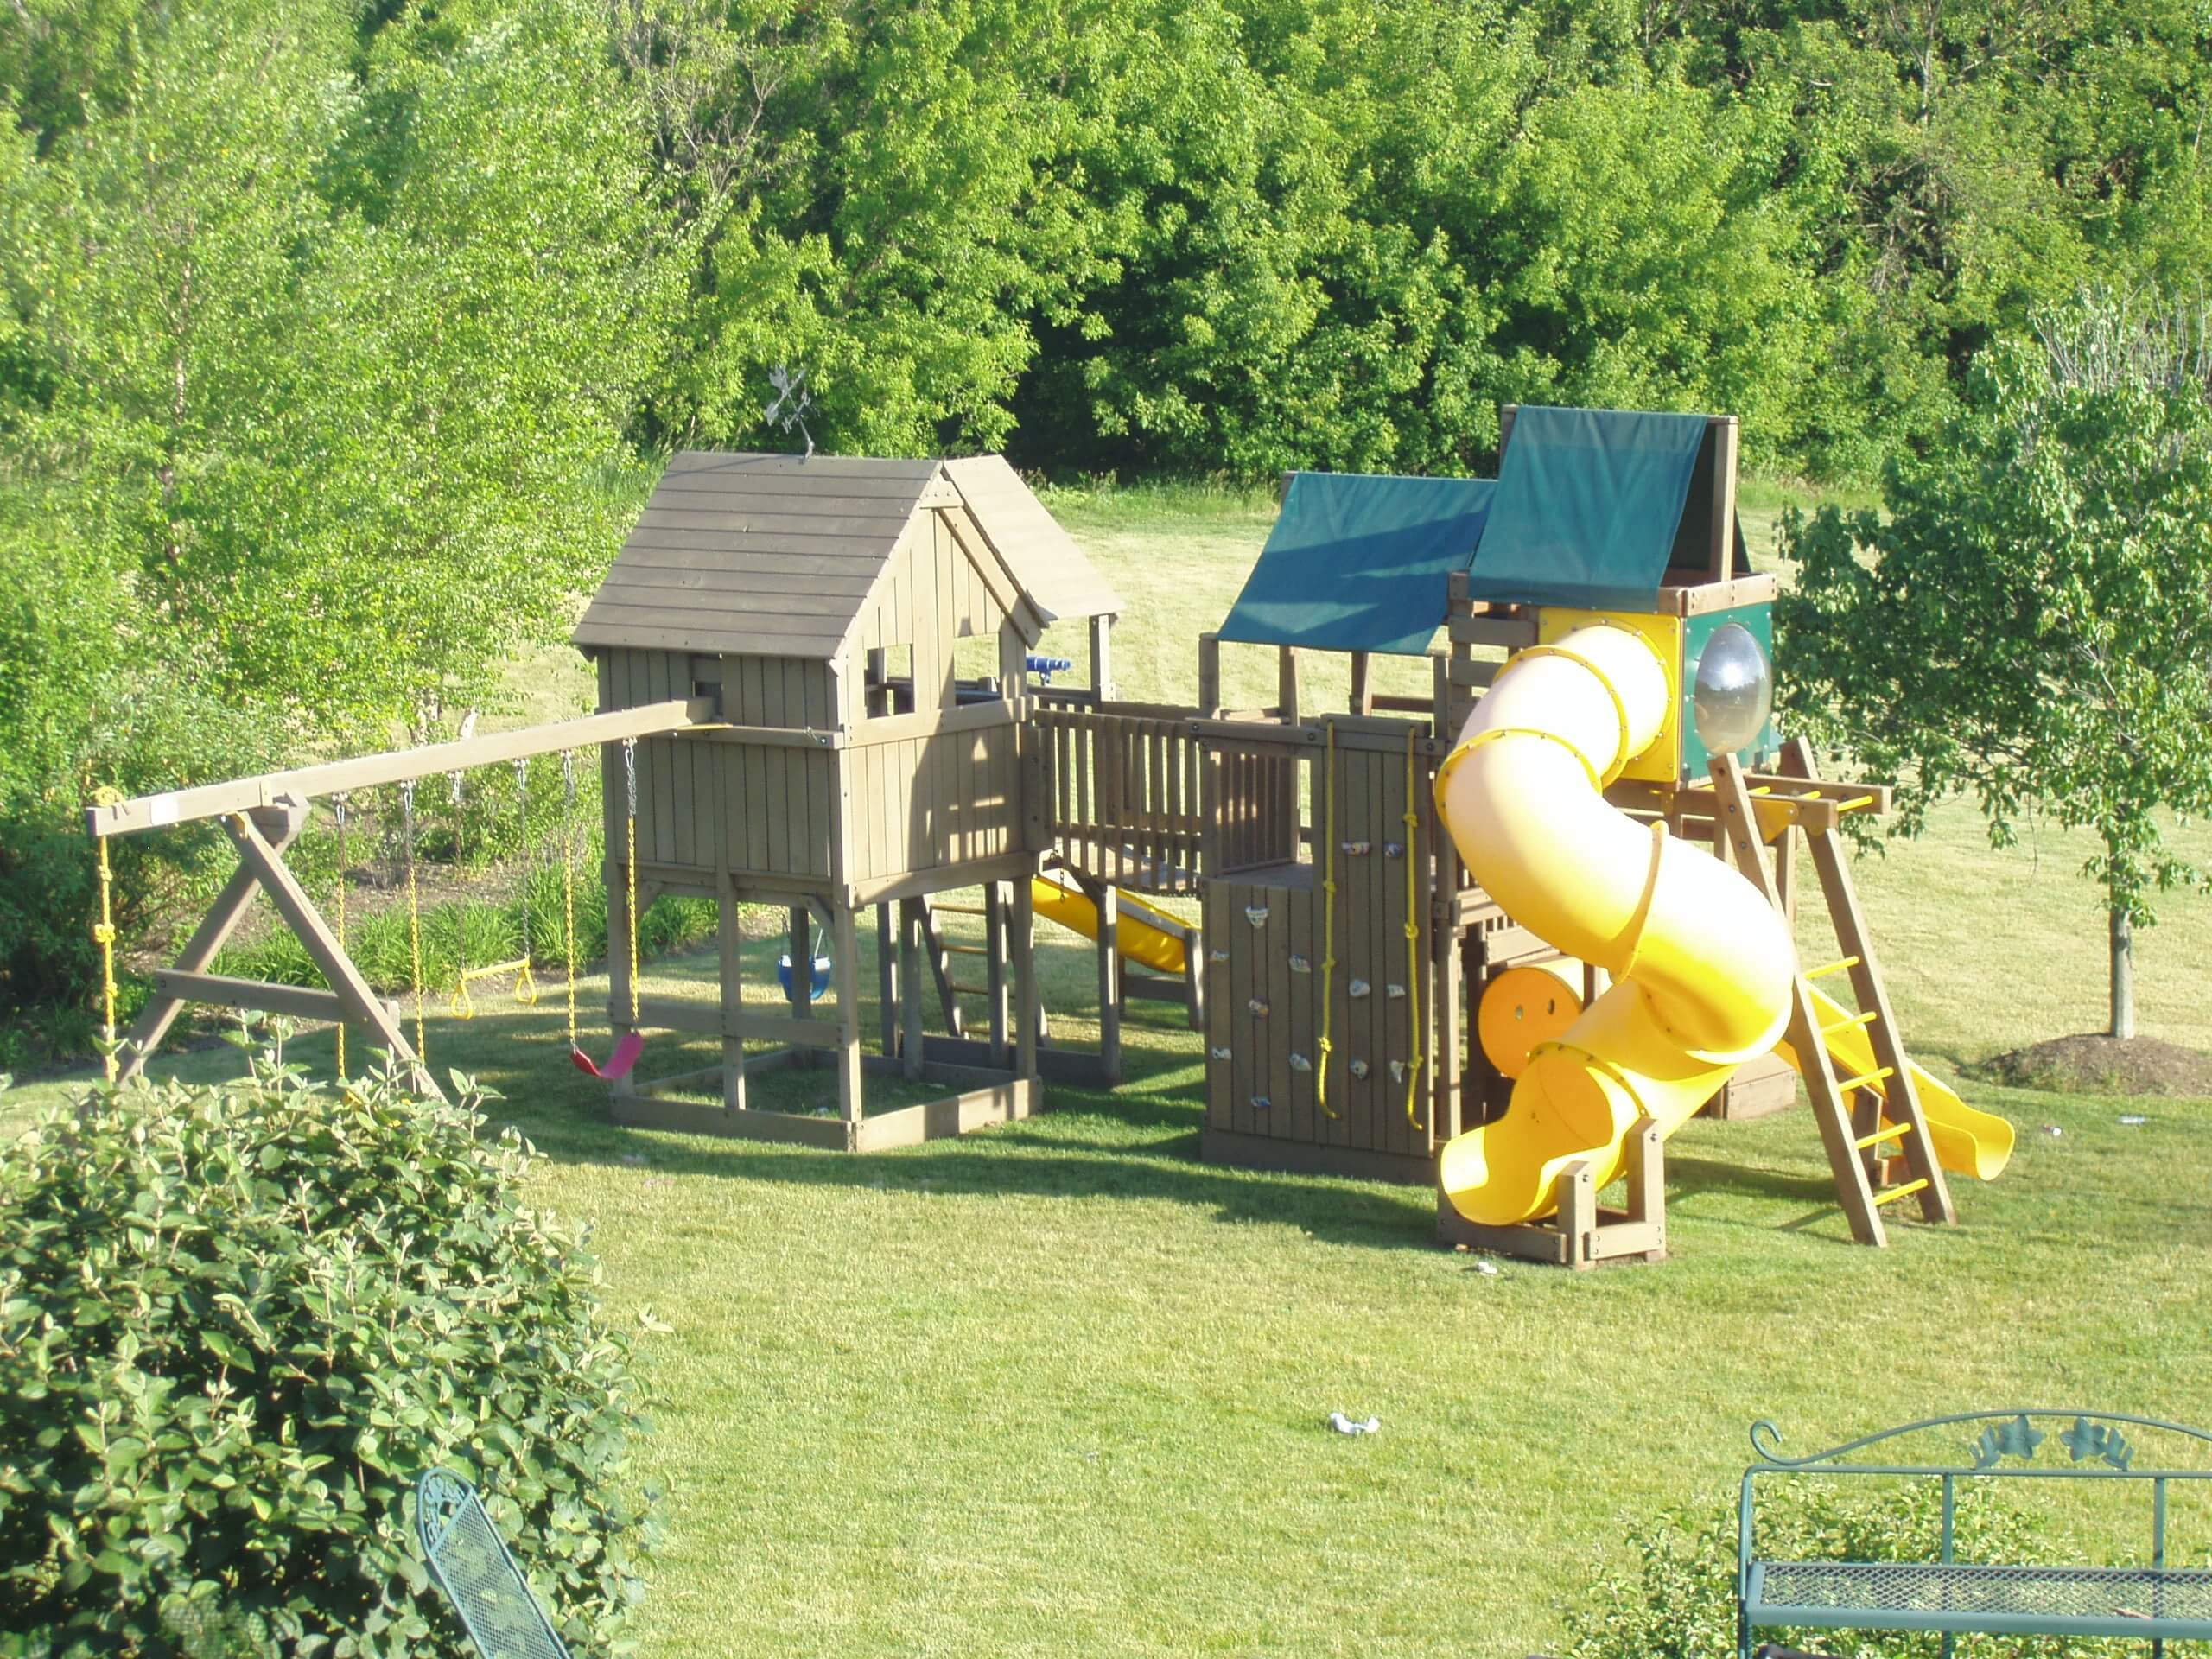 Large outdoor playset with slides and swings that has recently been stained with a semi transparent green colored stain.